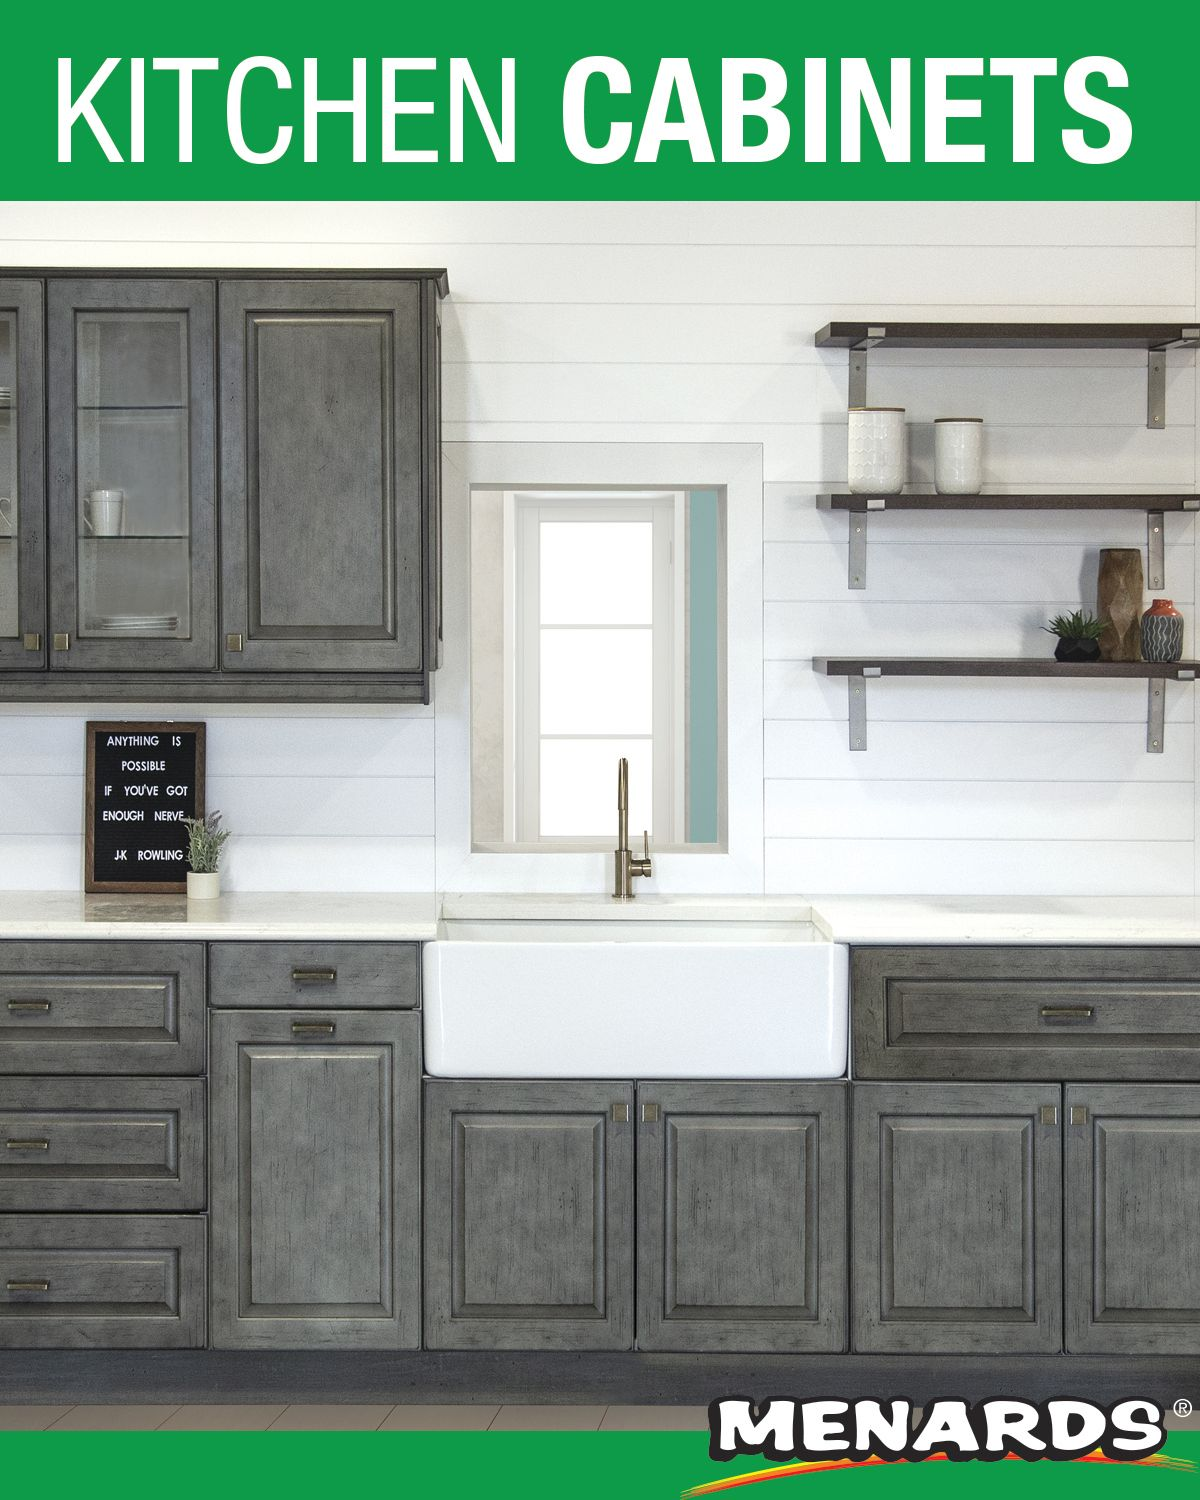 Klearvue Cabinetry Is A Menards Exclusive Cabinetry Program That Gives You The Look And Feel Of Custom Cabinetry With Kitchen Cabinets Cabinet Kitchen Remodel